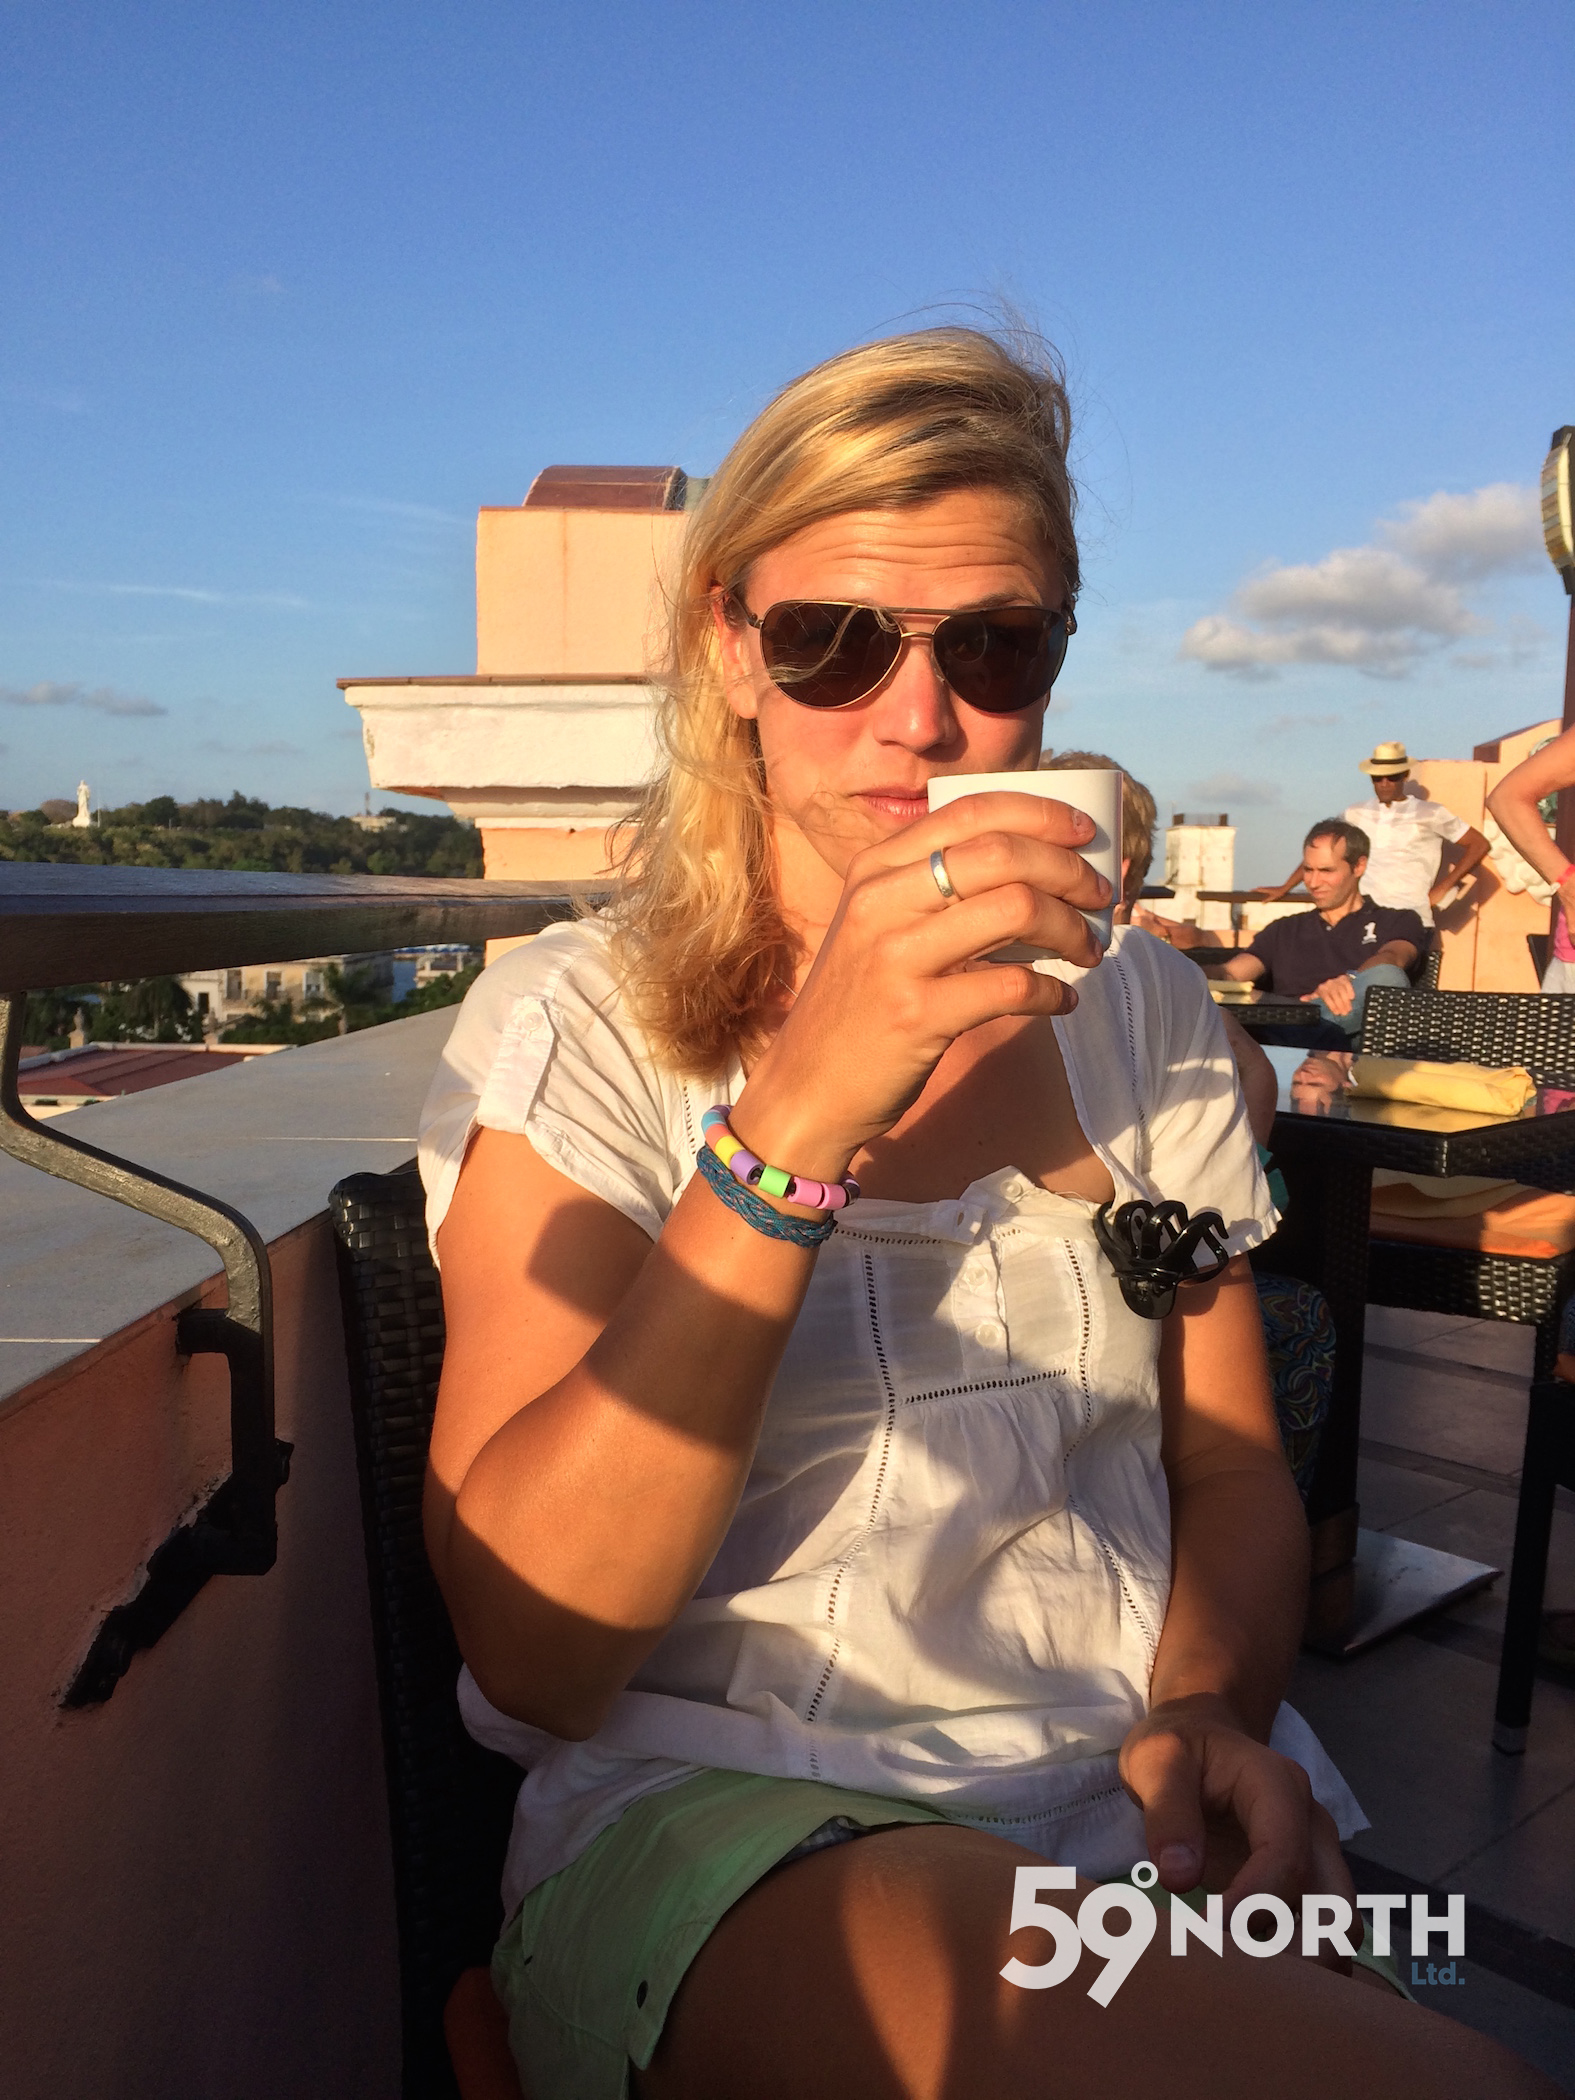 Sipping coffee on a roof top in havana, Cuba. April 2016